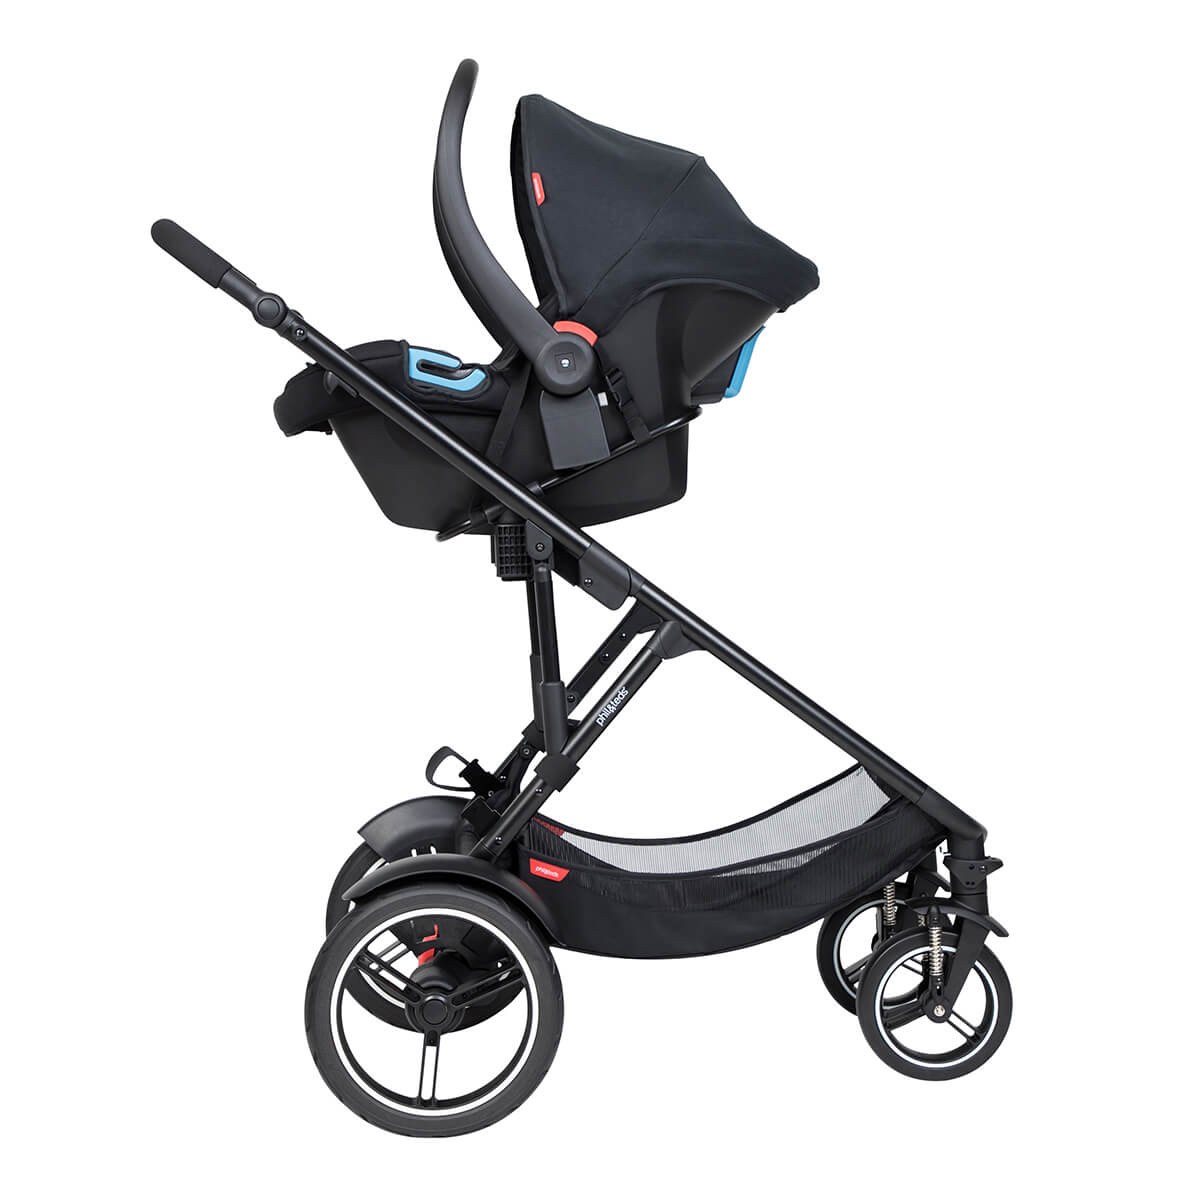 https://cdn.accentuate.io/4546158887017/19119322529897/philteds-voyager-buggy-with-travel-system-in-parent-facing-mode-v1625778491830.jpg?1200x1200